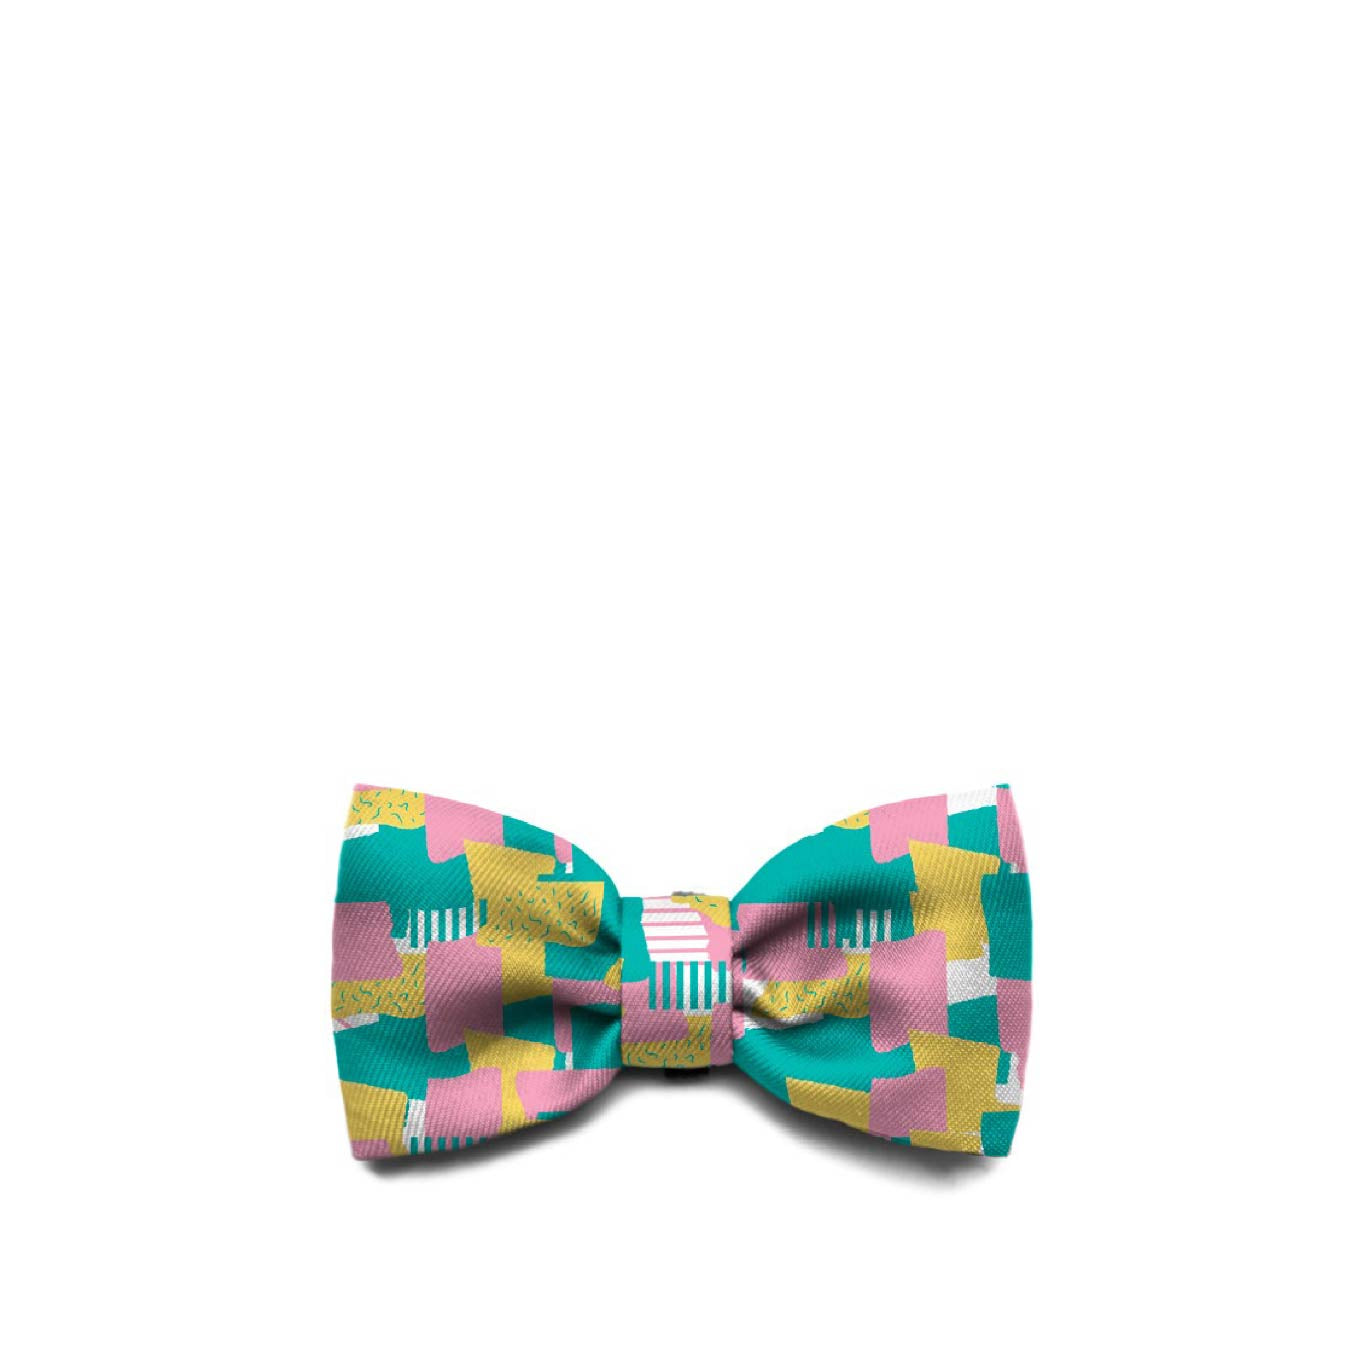 Zee.Dog Salina Bow Tie - Apparel, Dogs, New, Zee.Dog - Shop Vanillapup